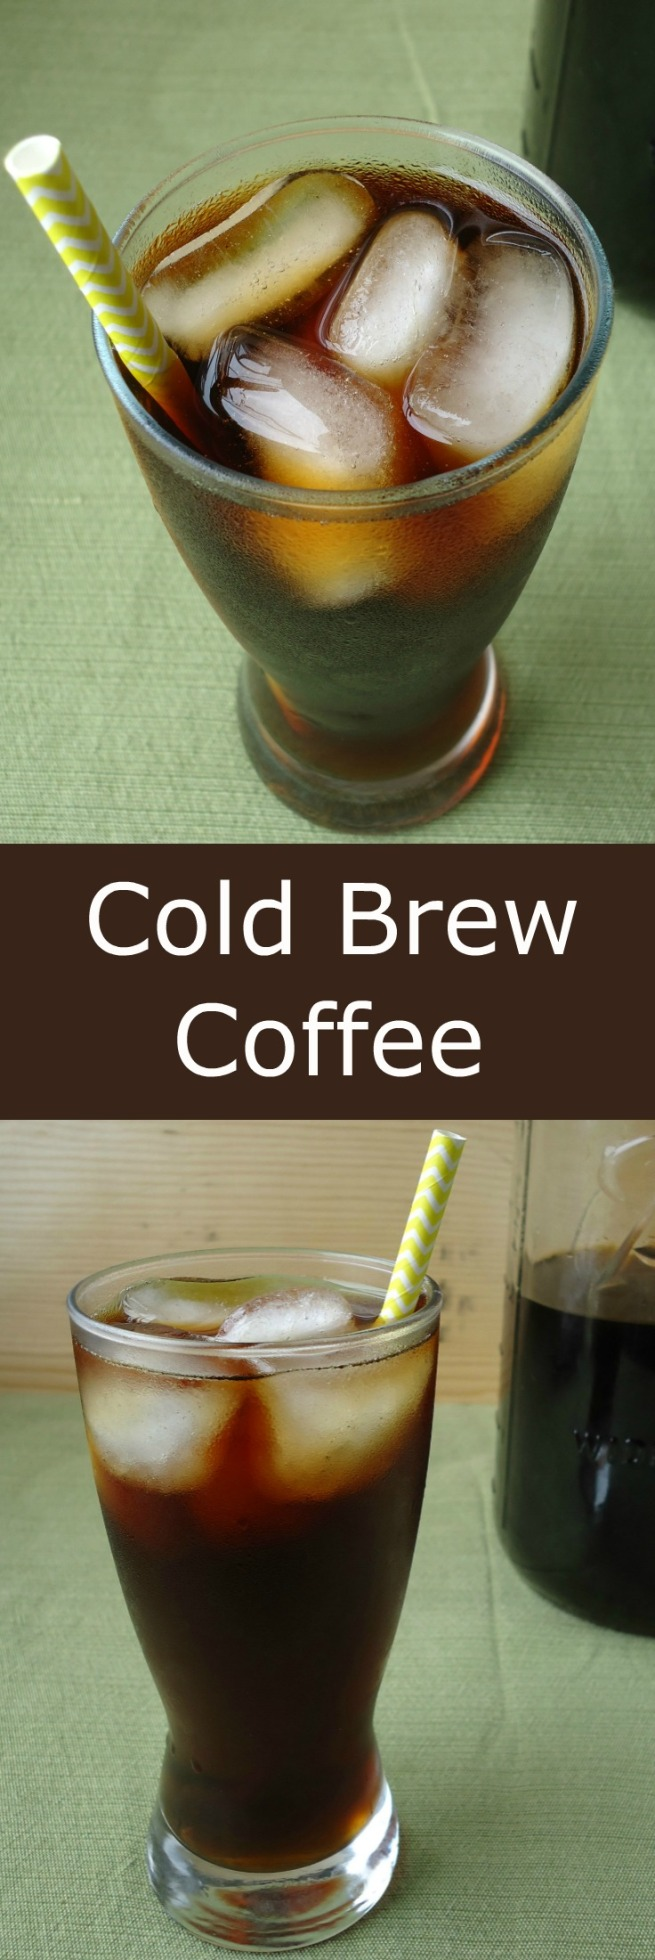 Cold Brew Coffee - Unwed Housewife